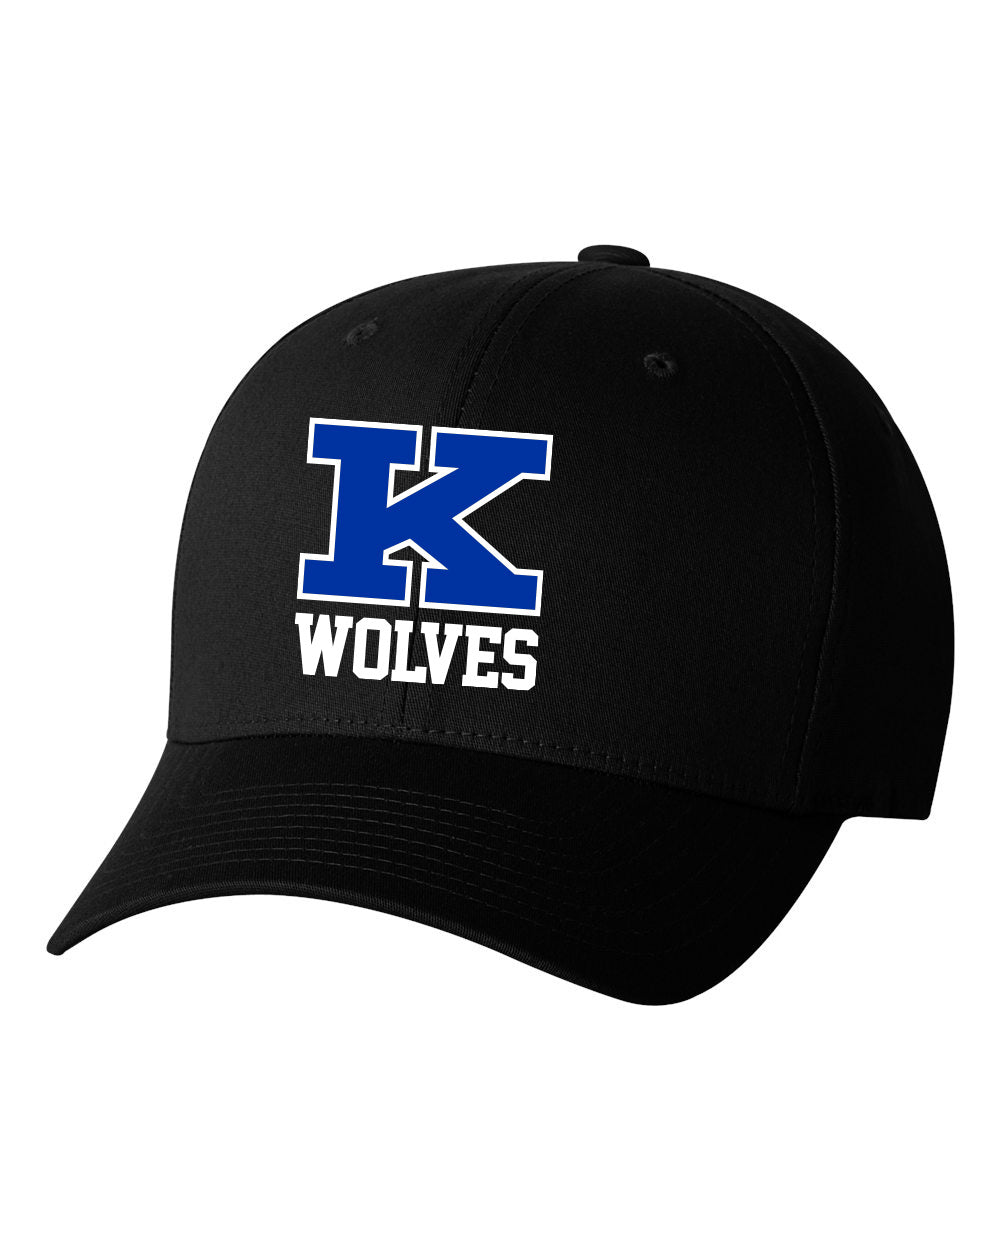 Wolves Embroidery Cool & Dry Hat